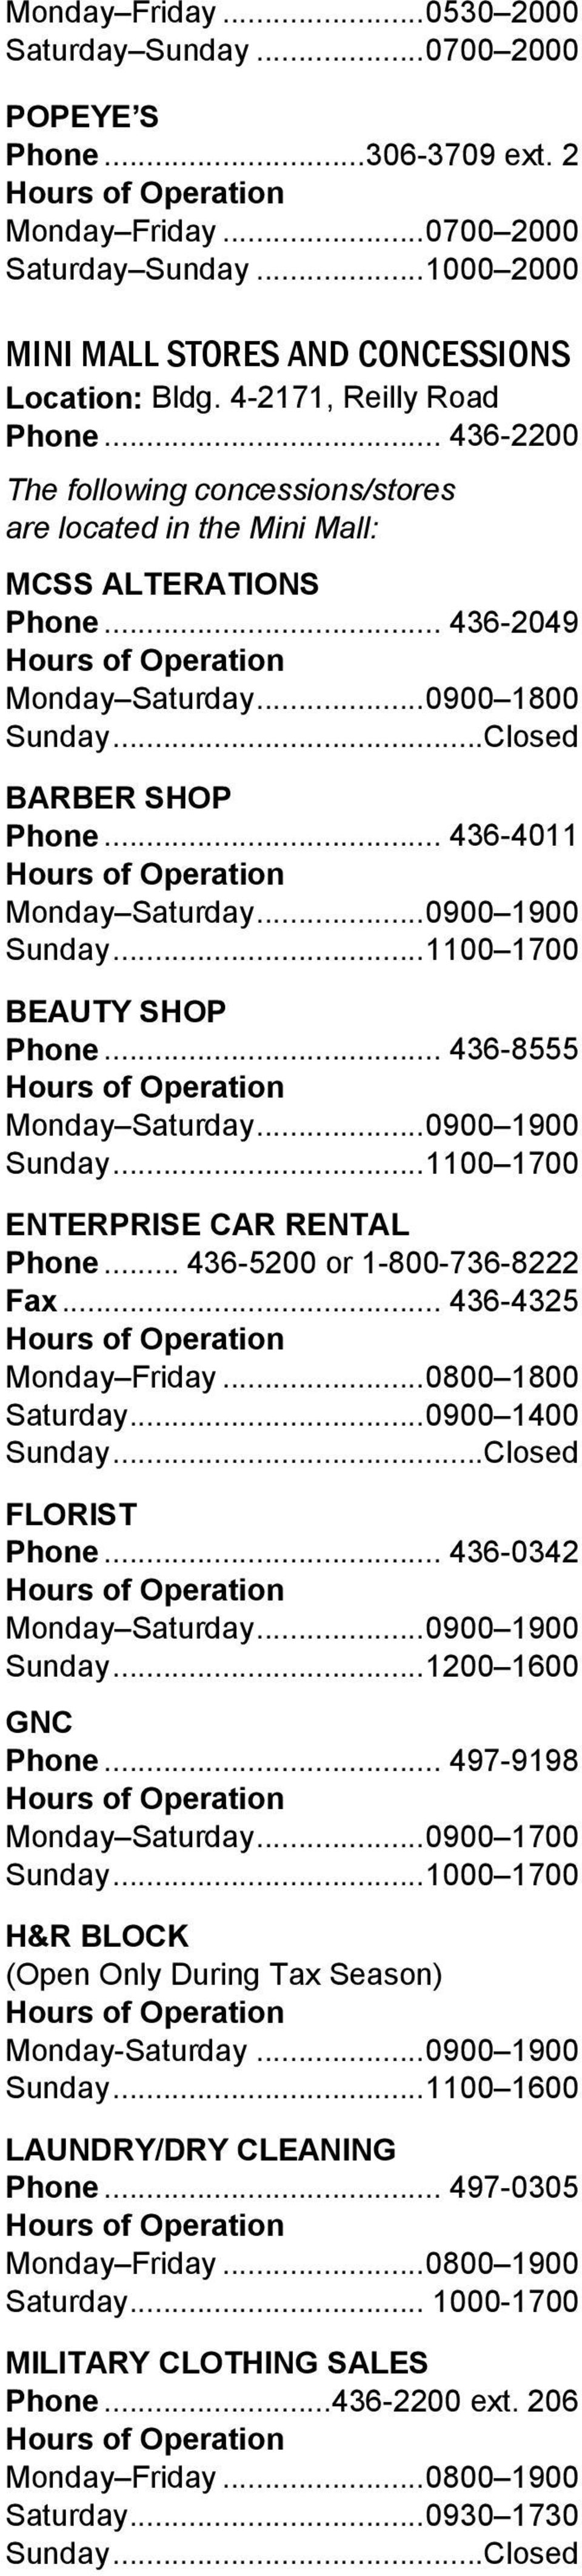 .. 436-4011 Monday Saturday... 0900 1900 Sunday... 1100 1700 BEAUTY SHOP Phone... 436-8555 Monday Saturday... 0900 1900 Sunday... 1100 1700 ENTERPRISE CAR RENTAL Phone... 436-5200 or 1-800-736-8222 Fax.